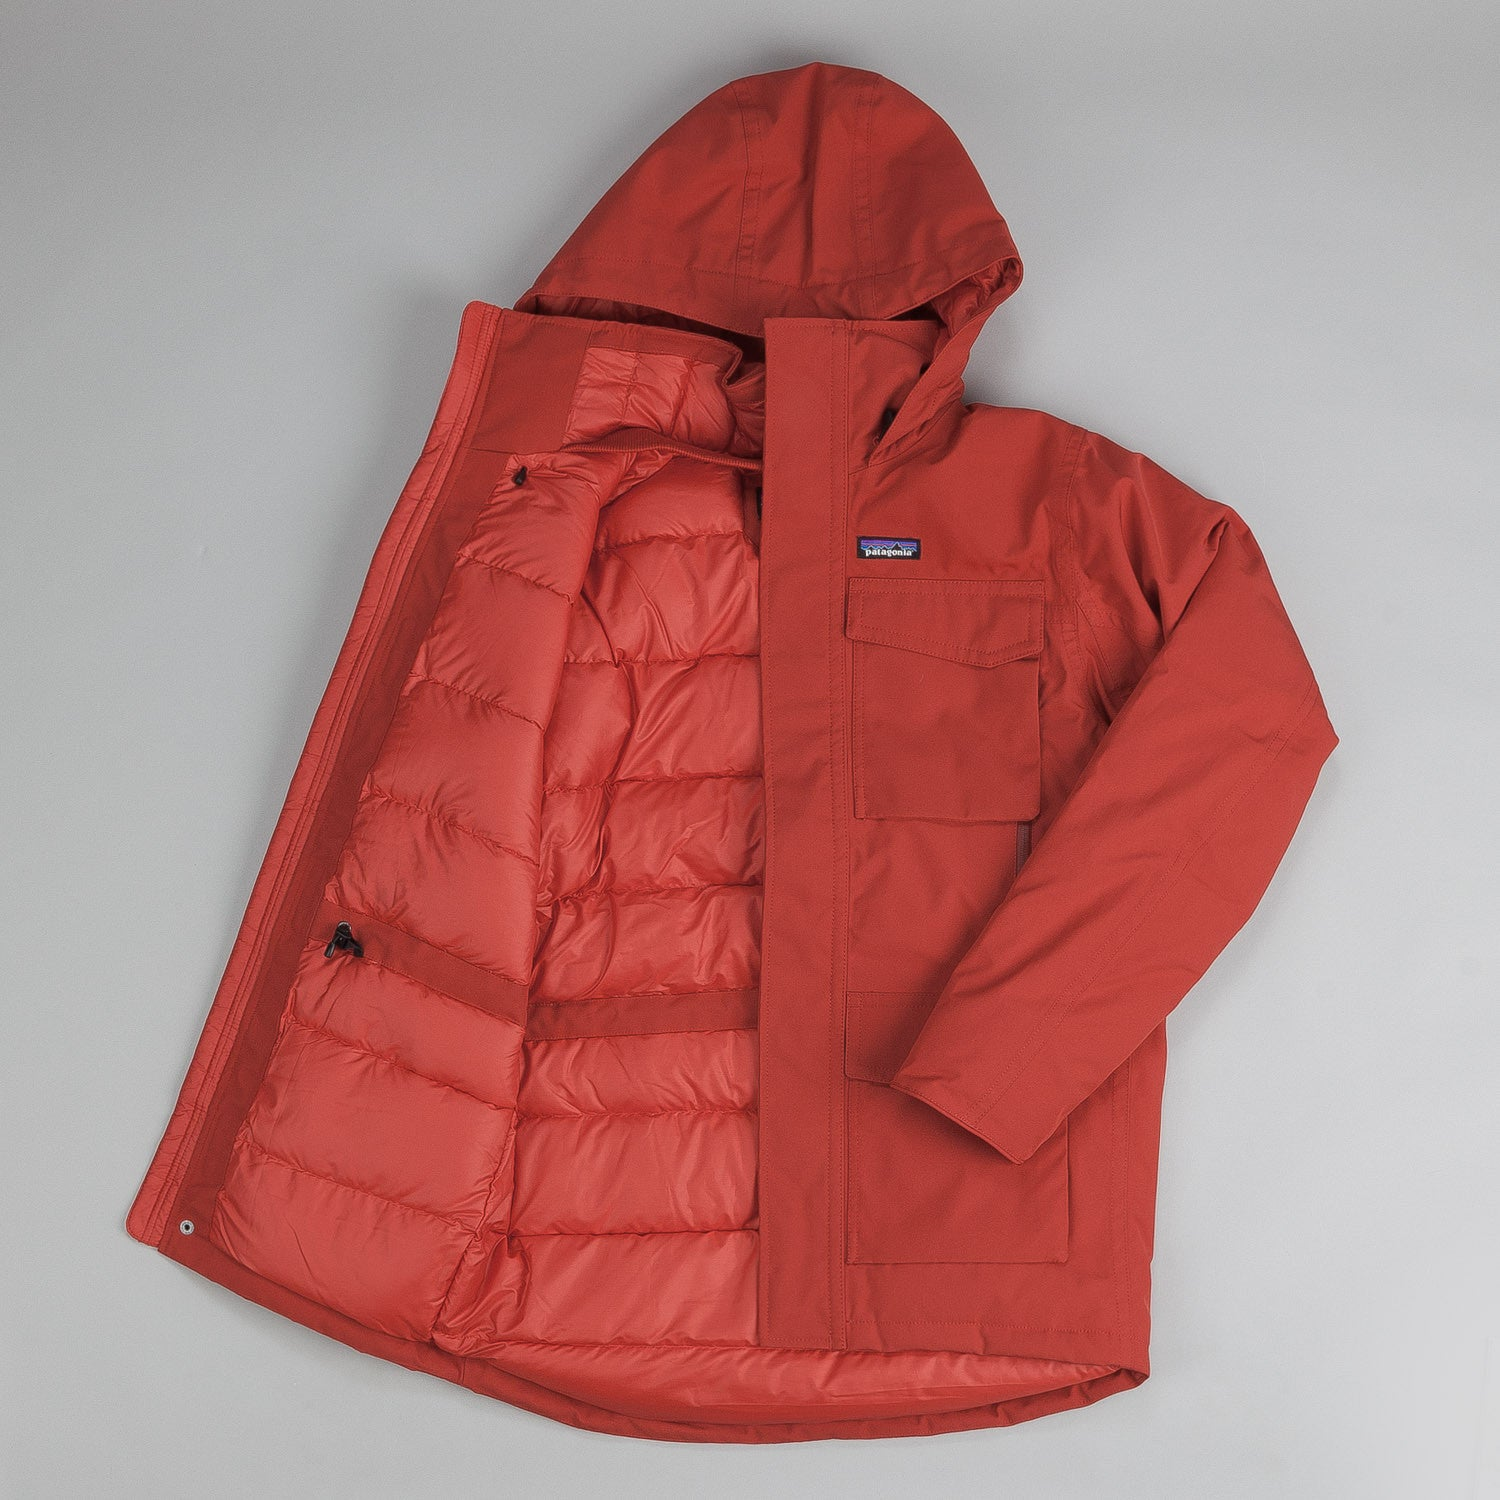 Patagonia Thundercloud Down Parka - Cochineal Red